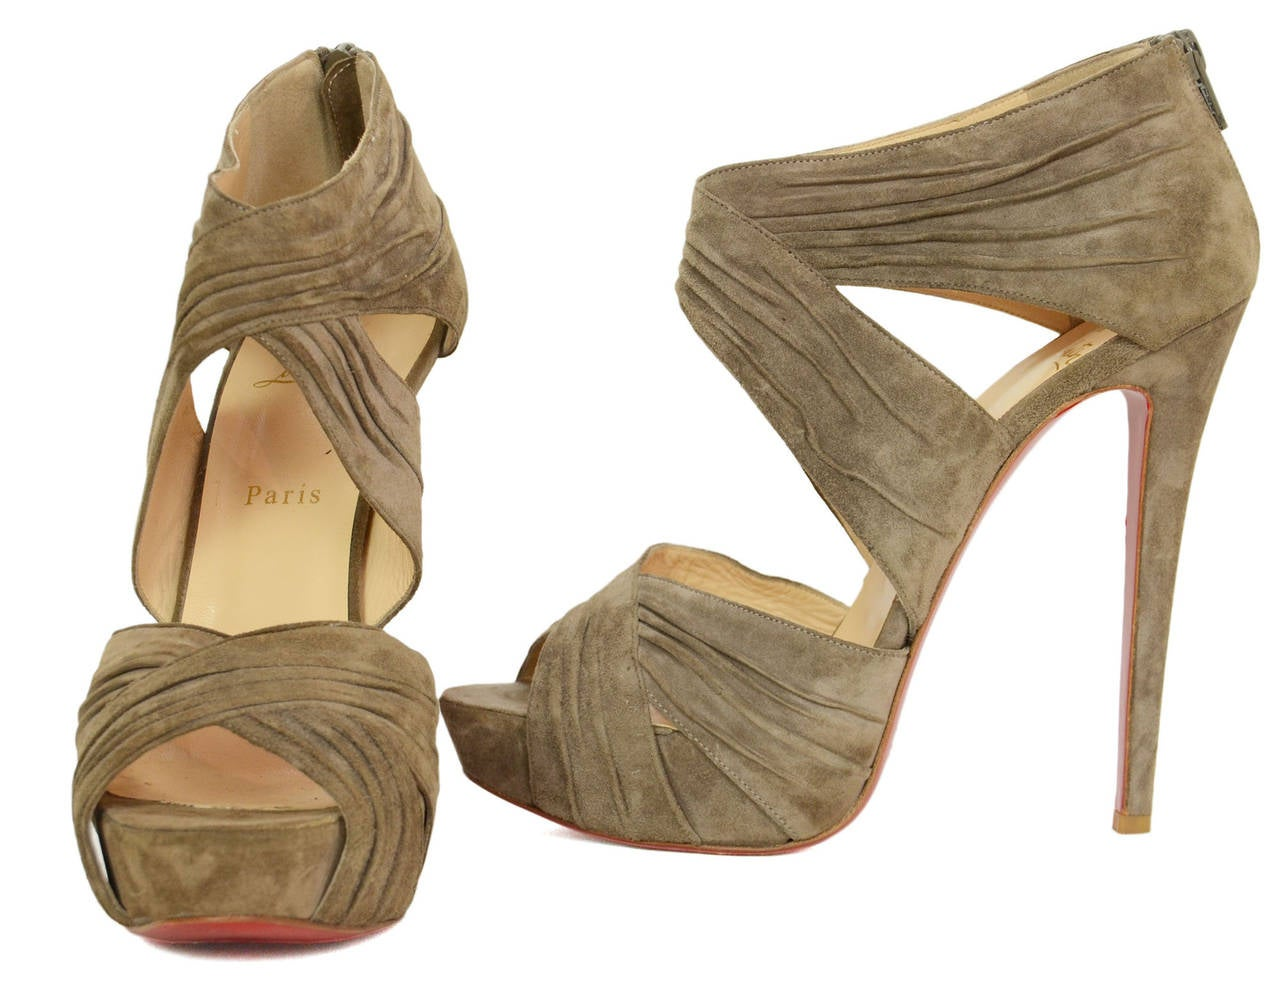 CHRISTIAN LOUBOUTIN Ruched Taupe Suede Bandra 140 Pumps sz 40.5 4